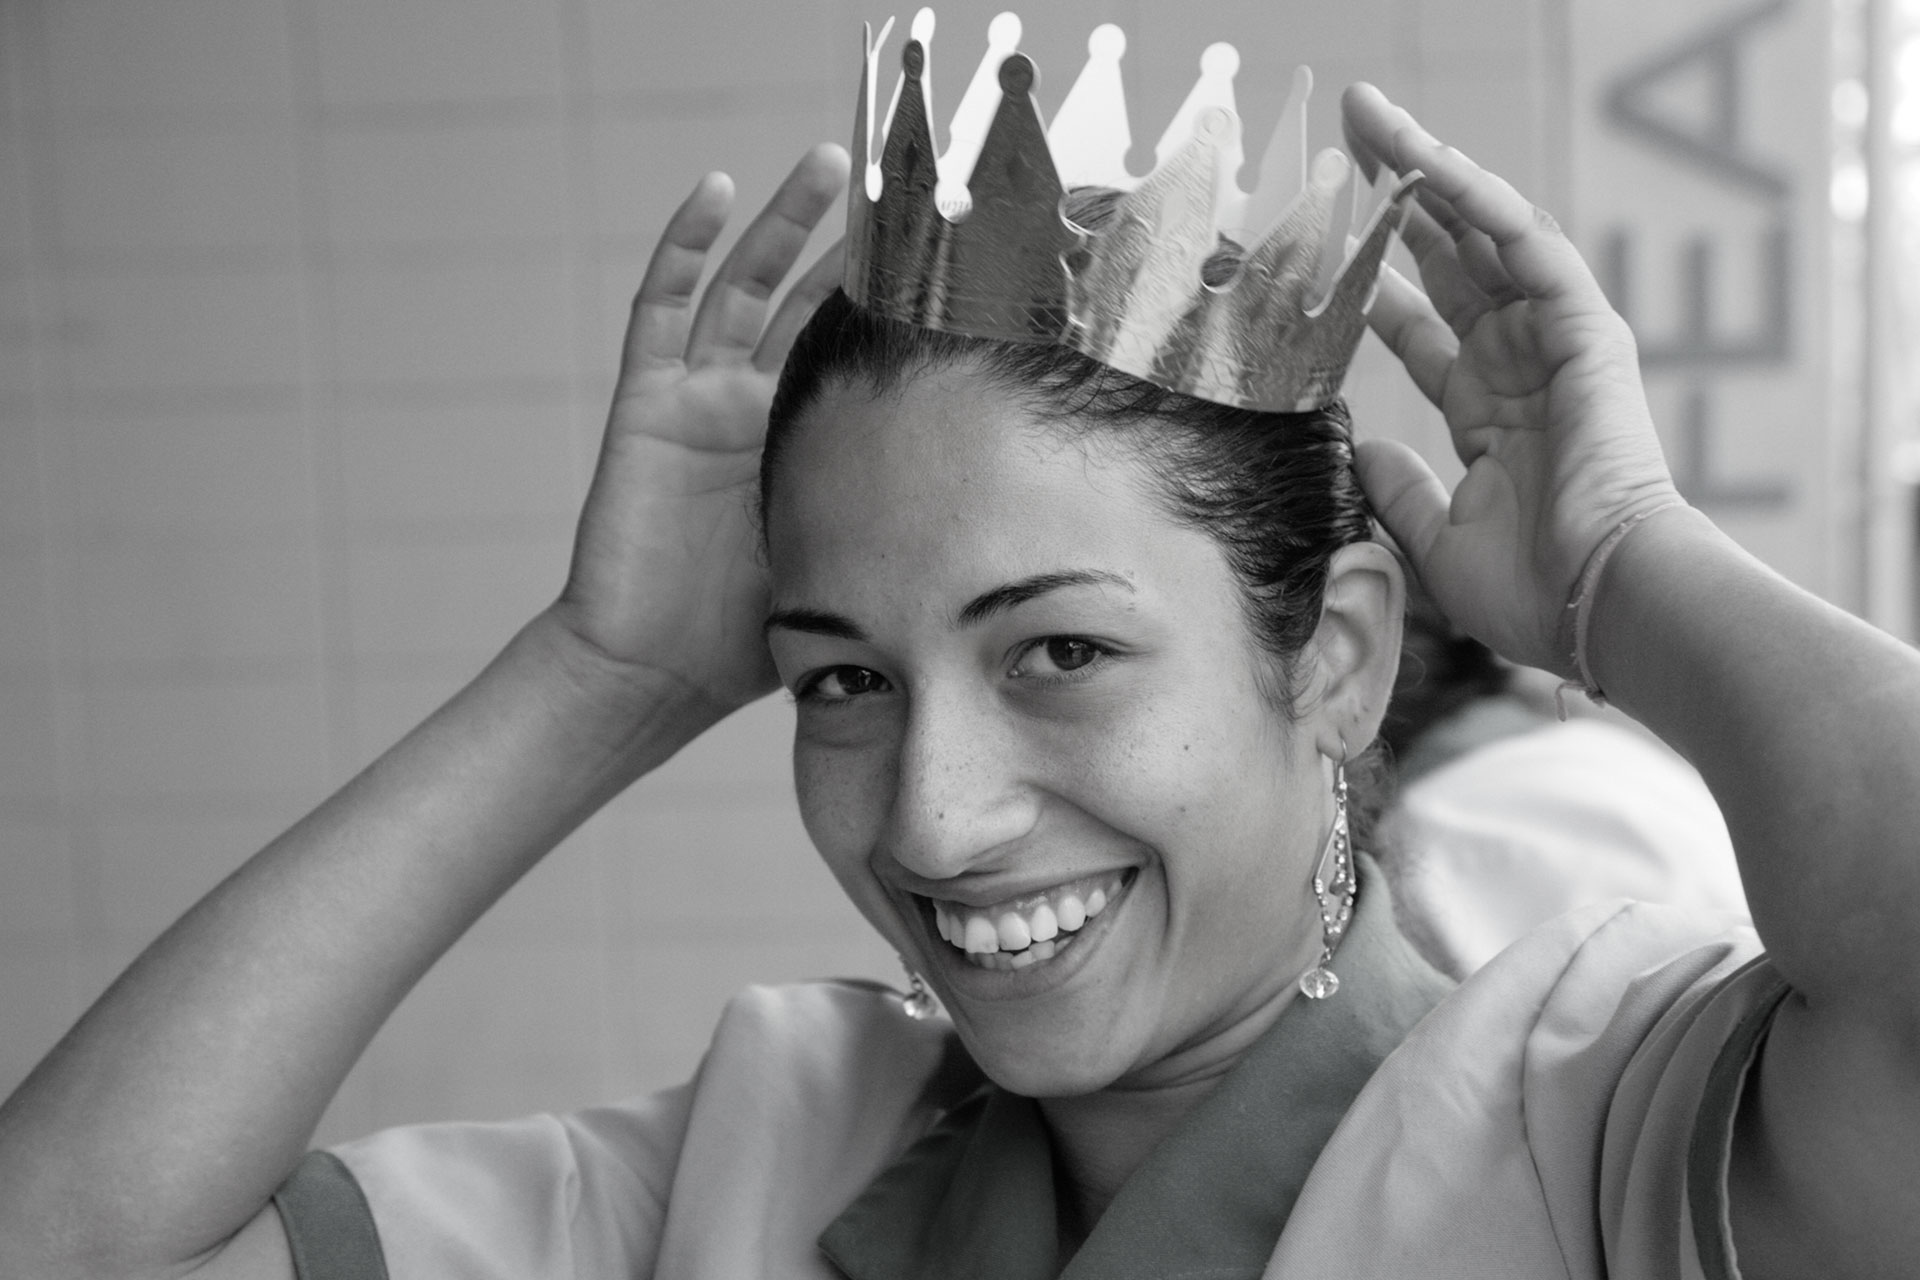 Crowned service maid at the BIEN Congress in São Paulo in 2010, Brazil. -